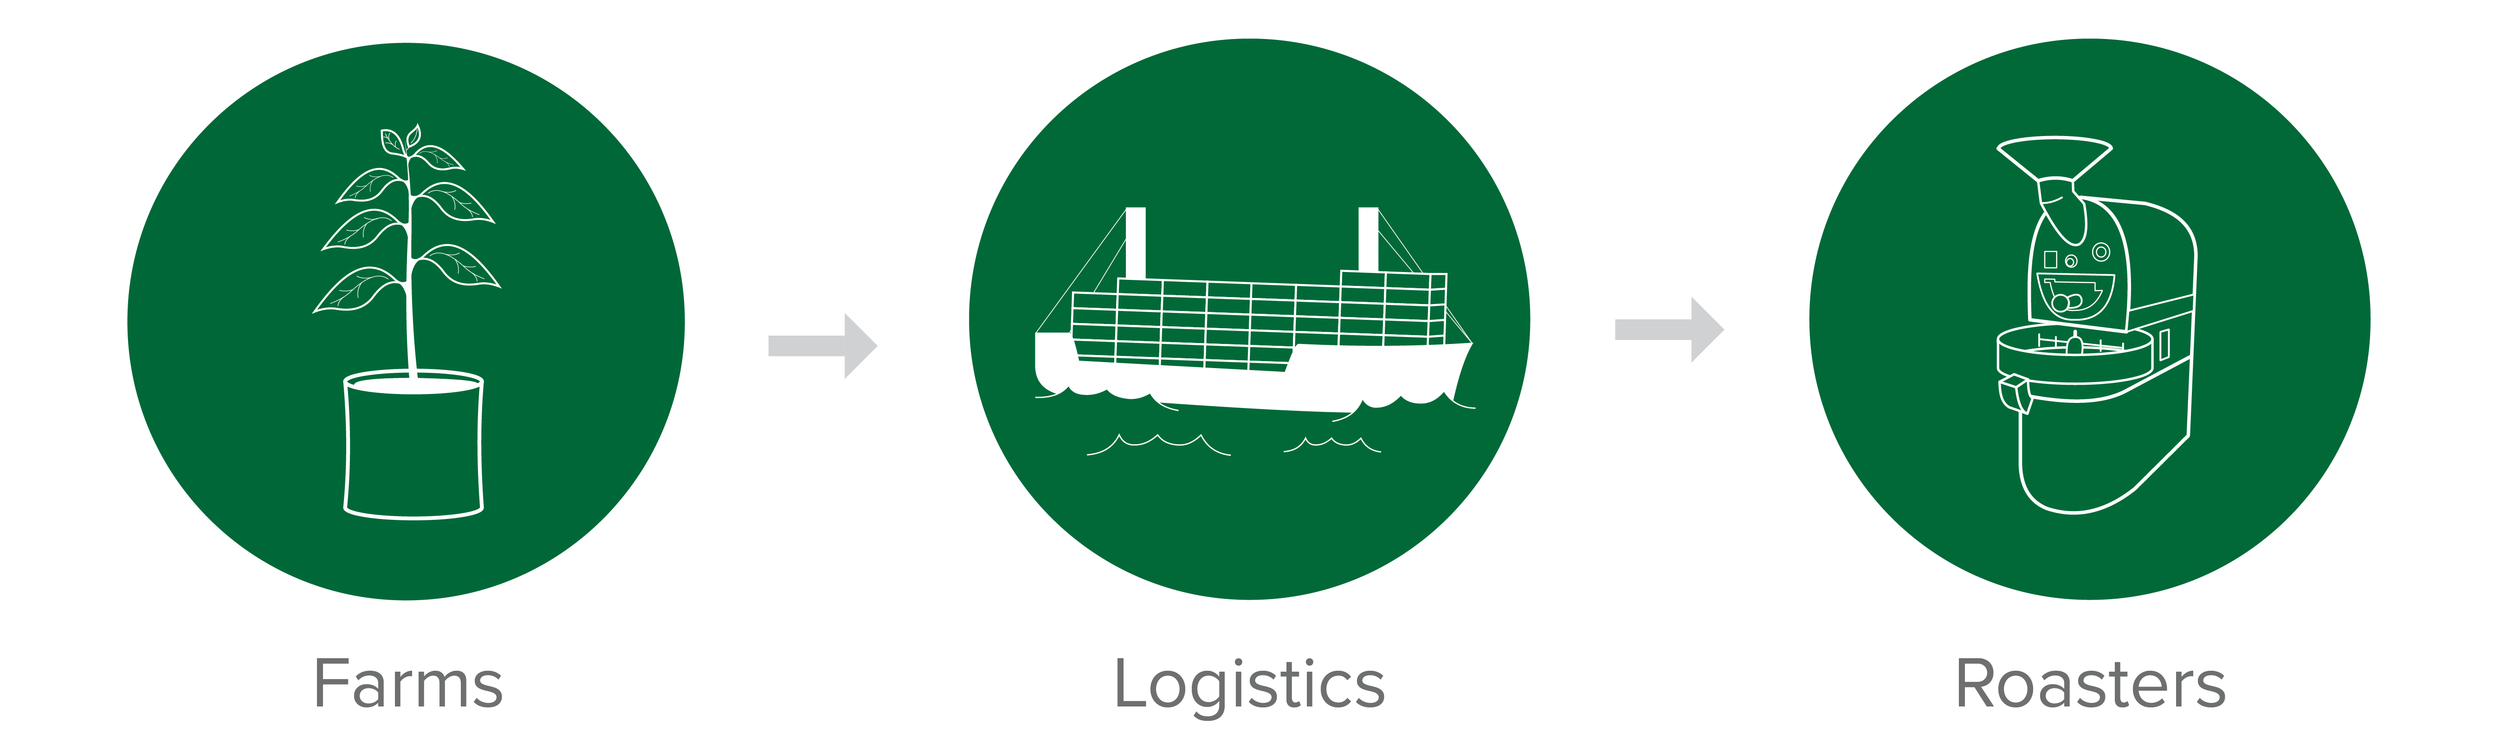 Final Logistics Icons.png